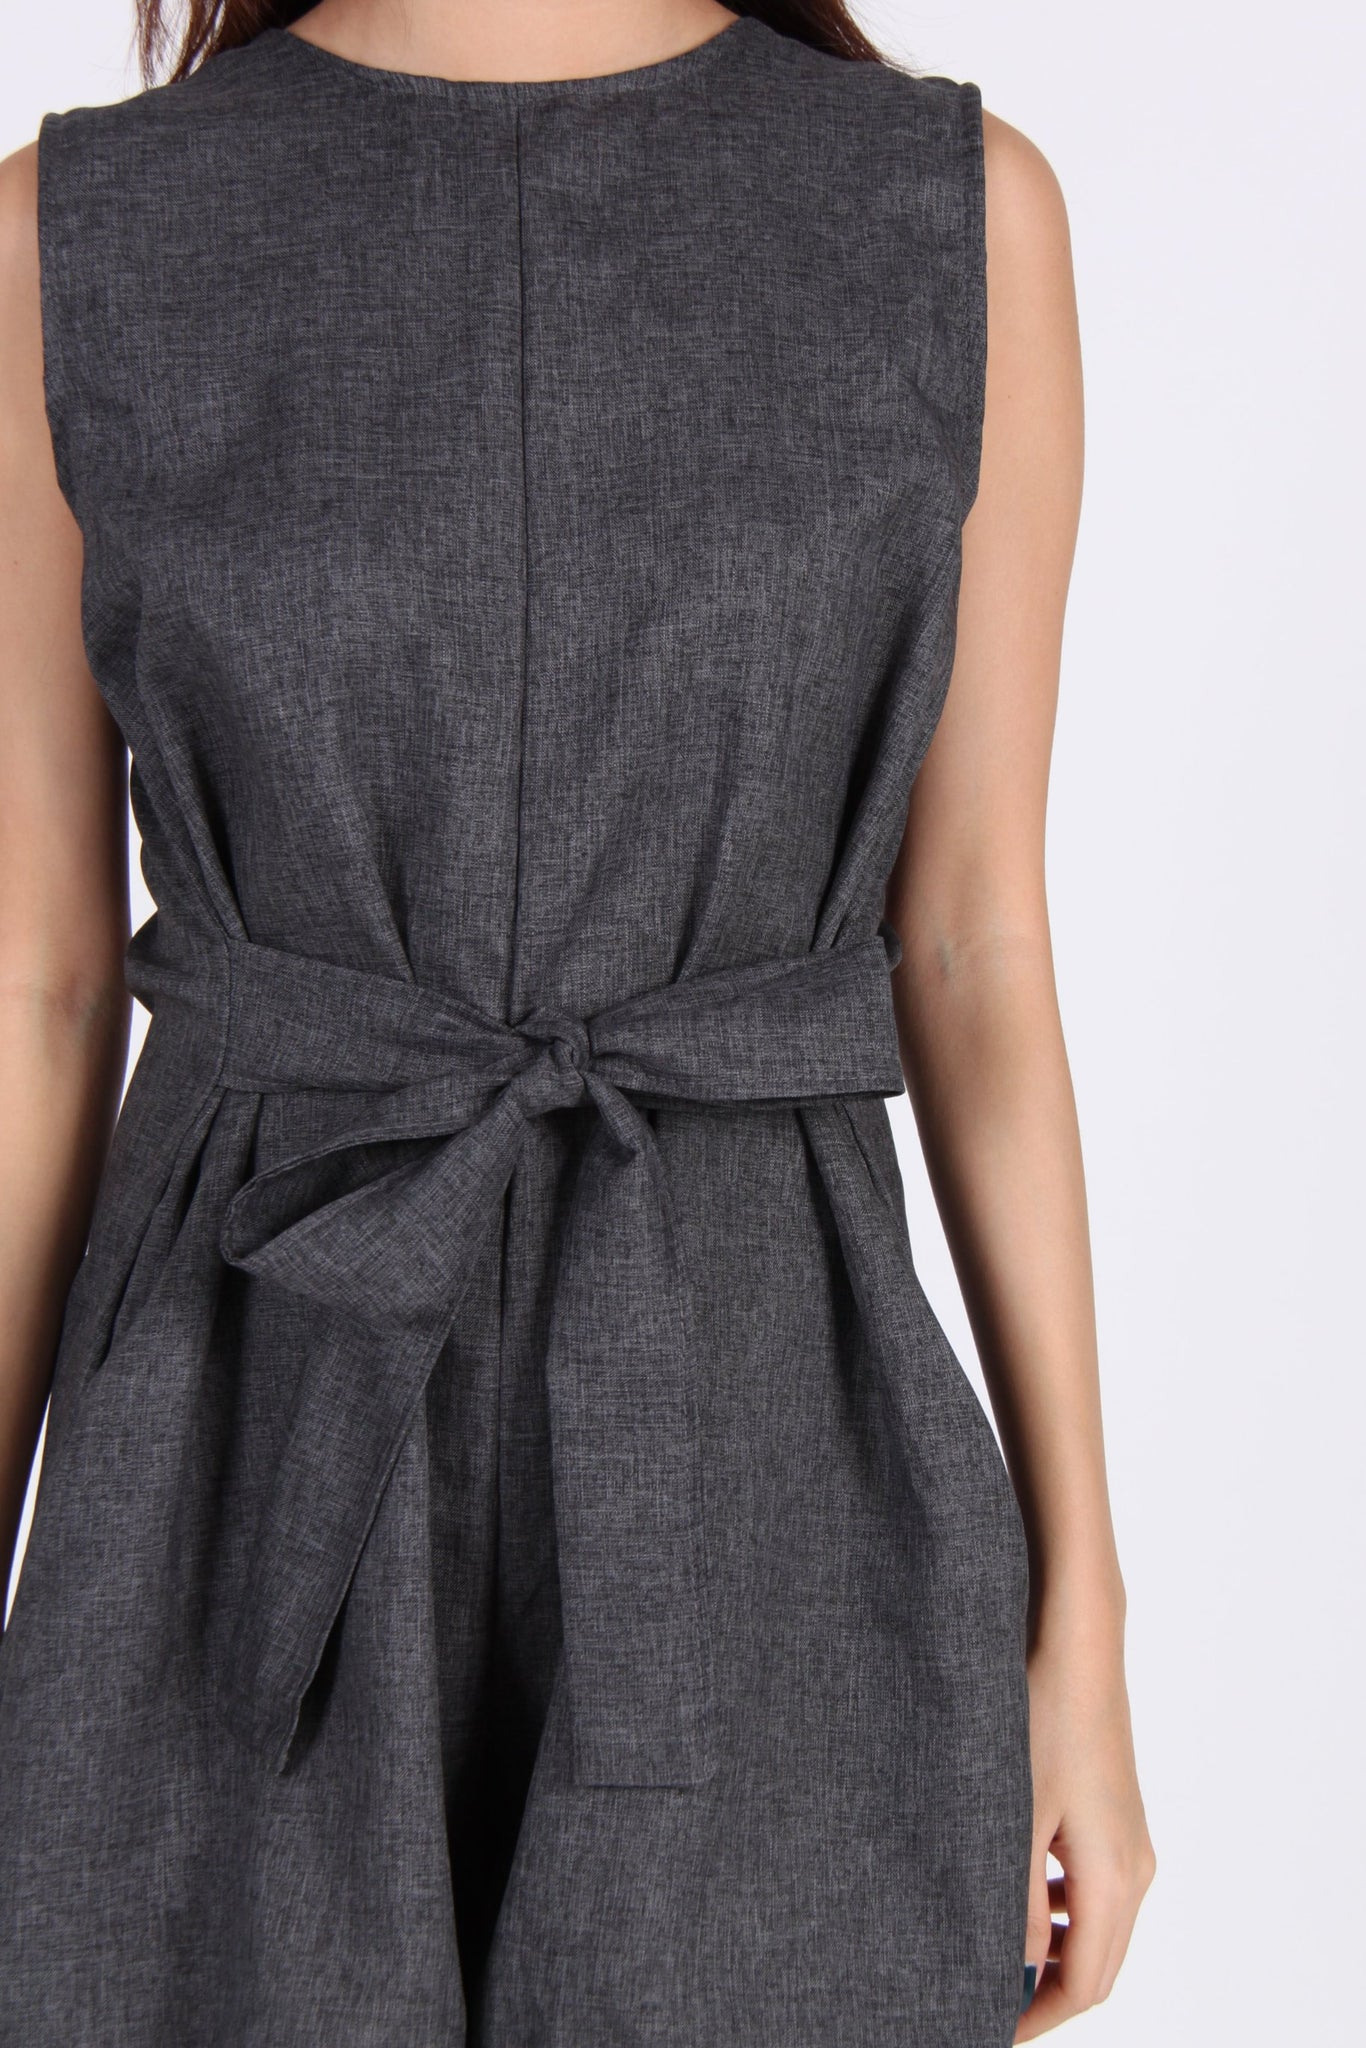 Sleeveless Octopus Romper in Dark Grey